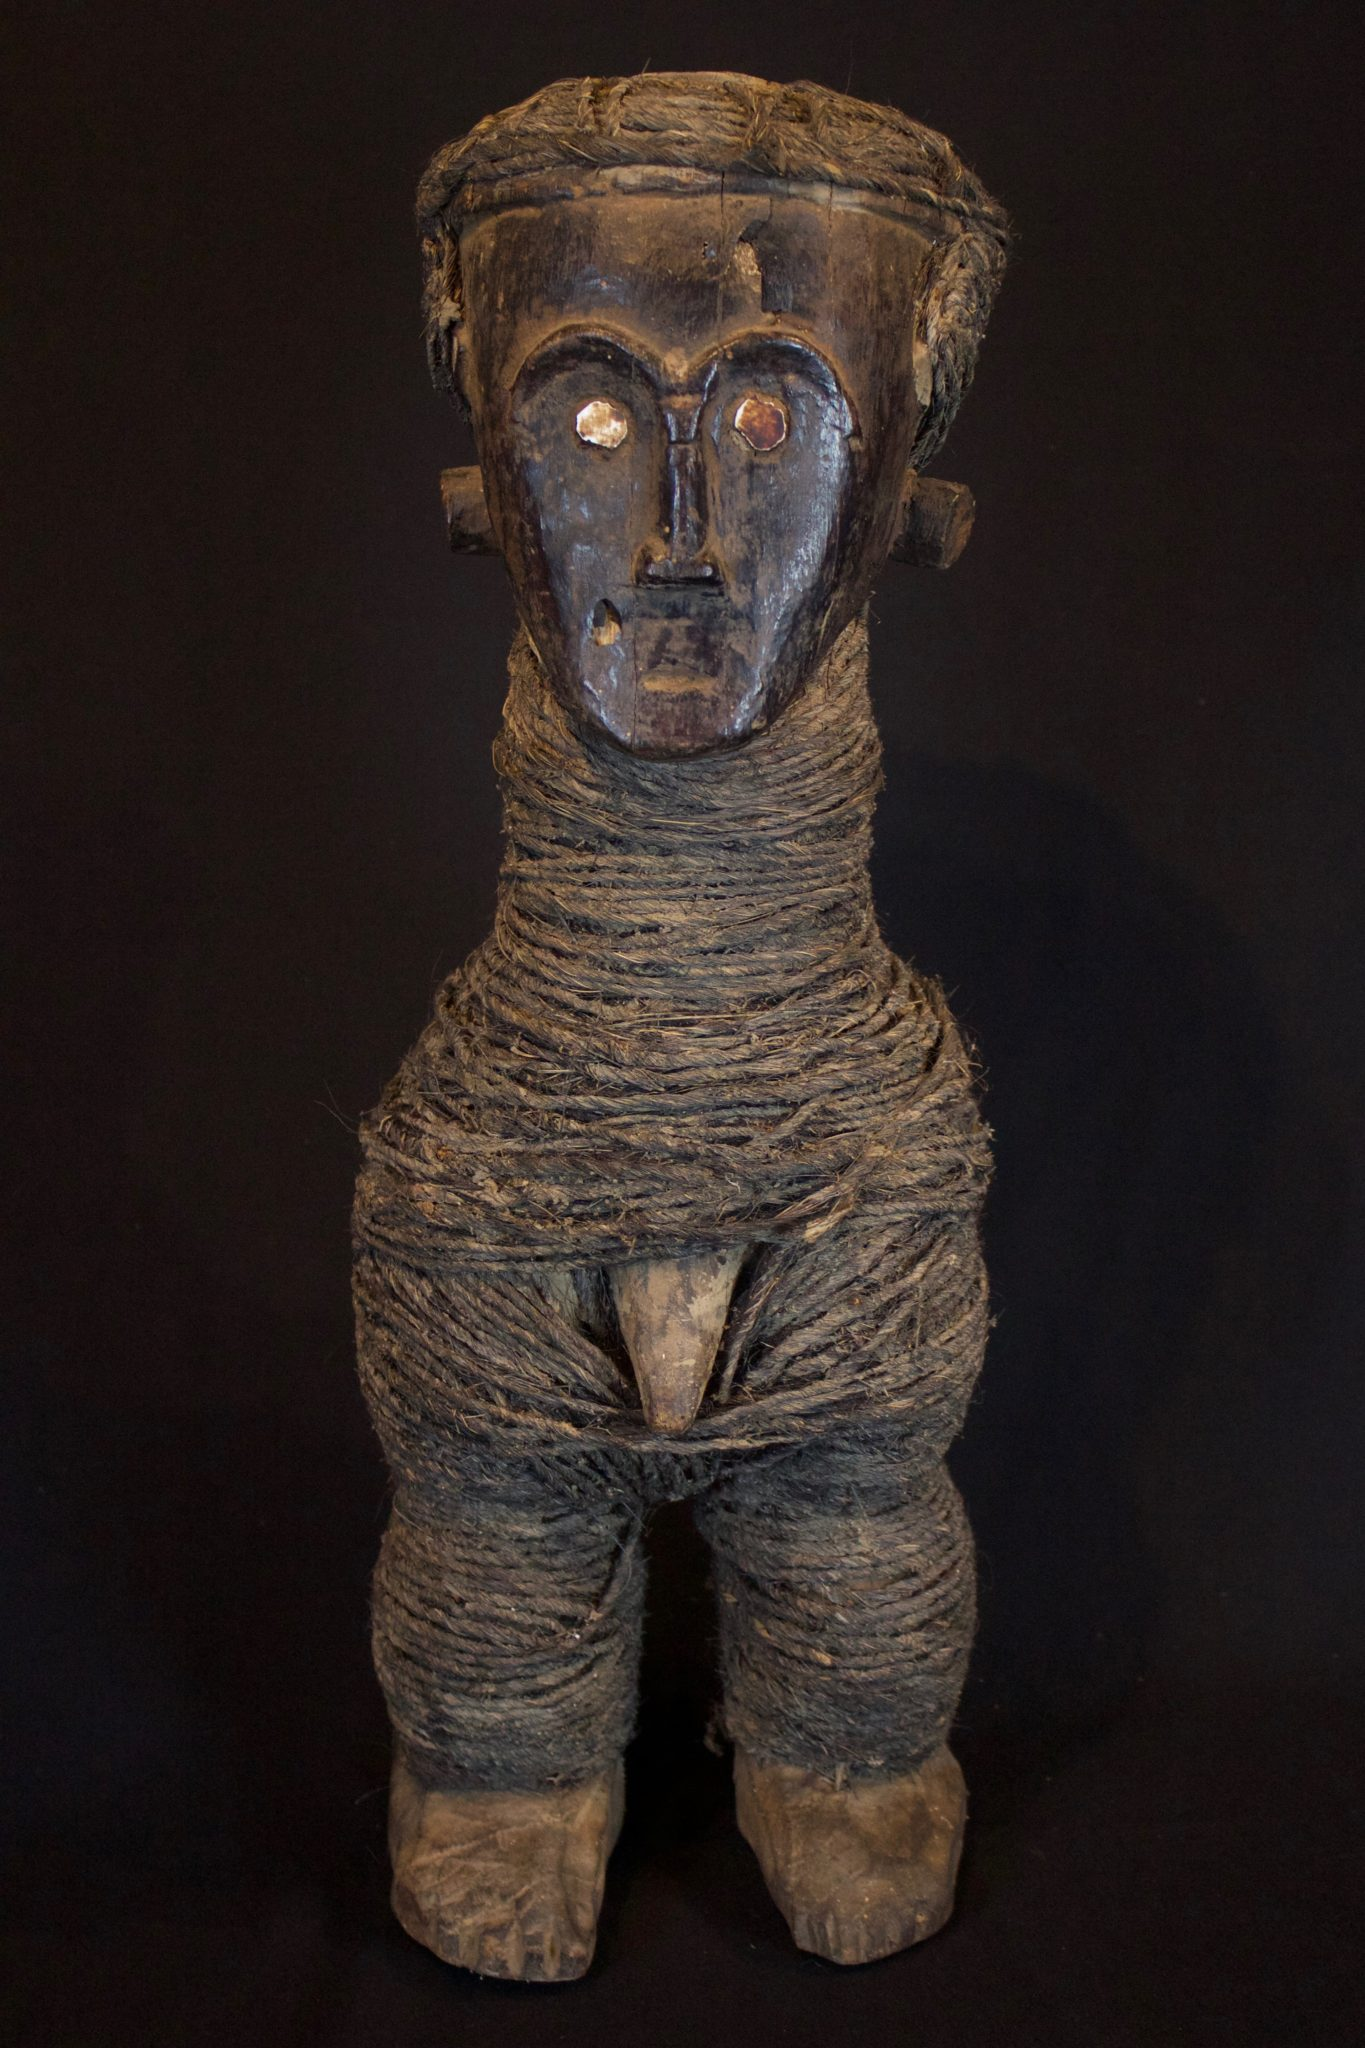 "Shaman's Ritual Figure, Timor Island, Sunda Island, Indonesia, Niki Niki village Early 20th c, Wood, fiber cord, shell. Used by shaman to treat people as well as for other traditional rituals. 21"" x 7 ½"" x 6 ½"", $1400."